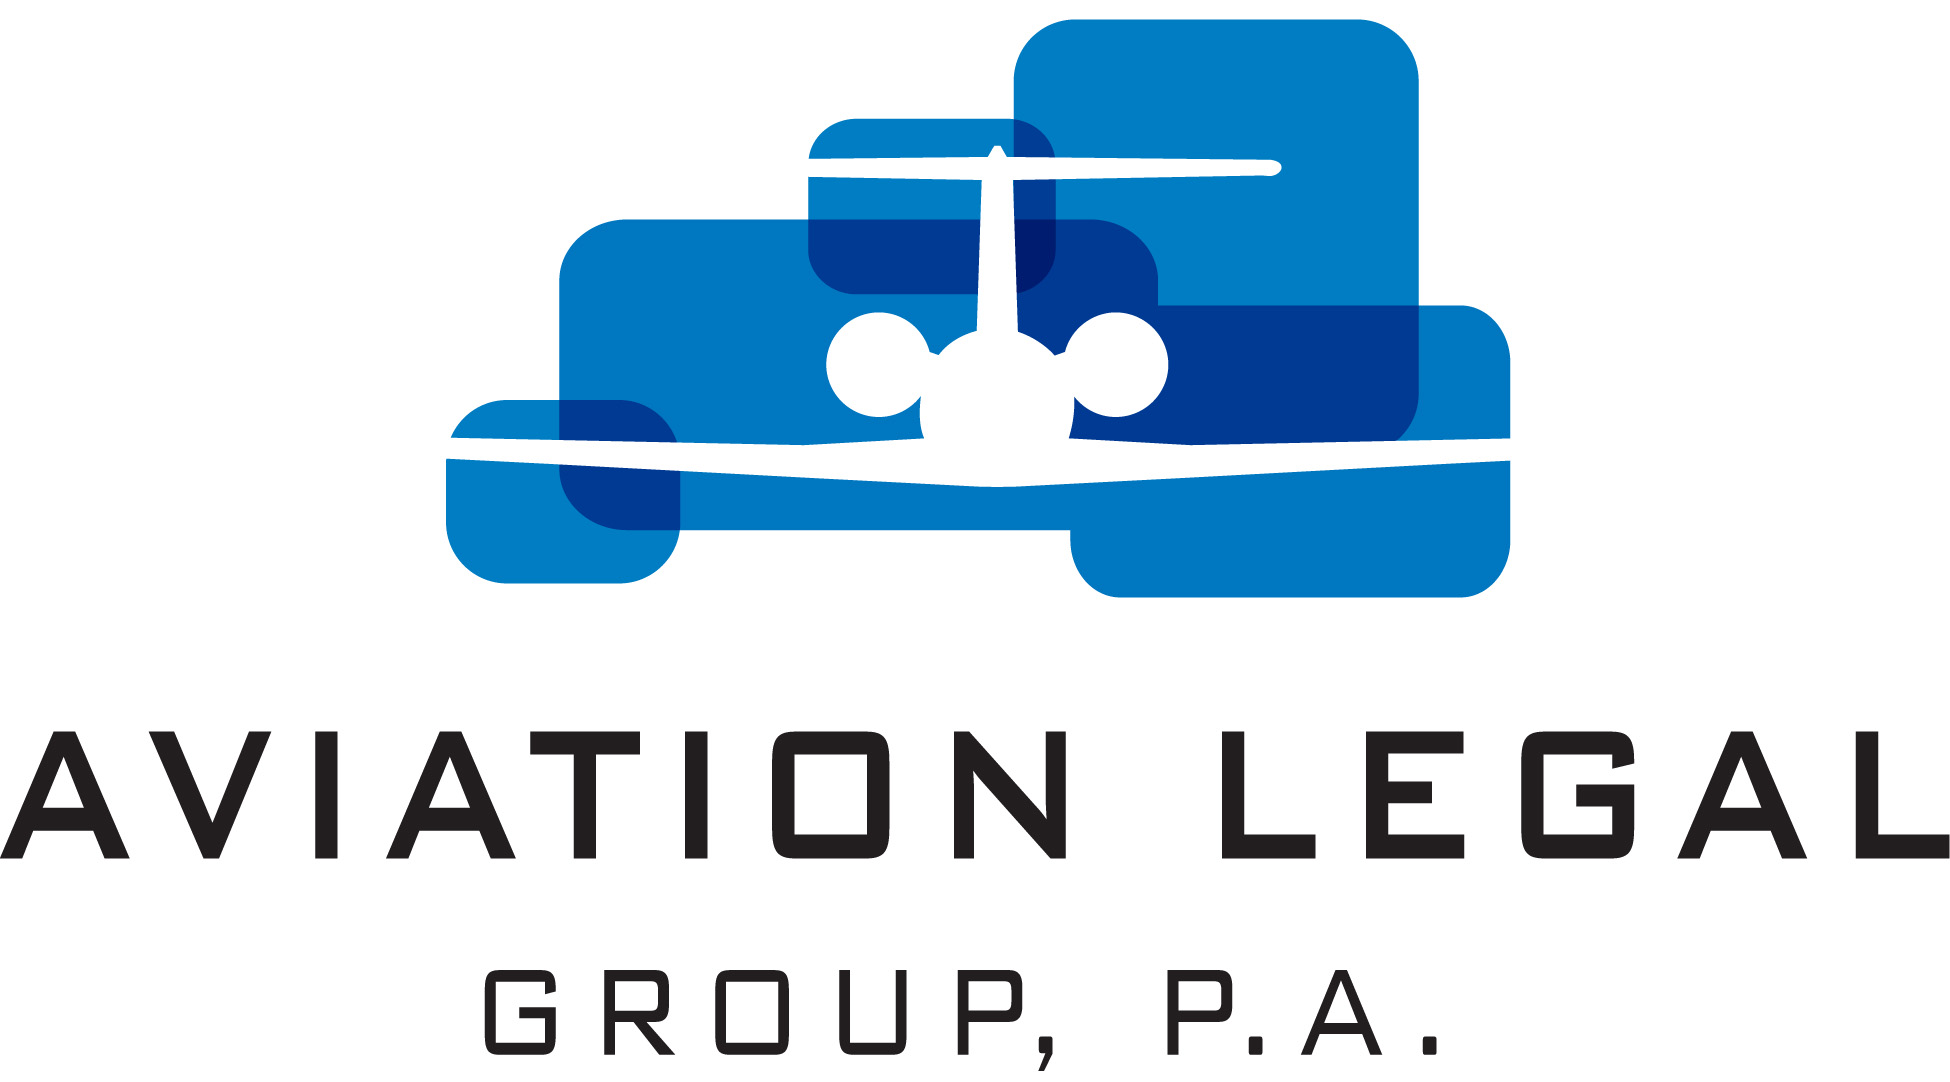 Aviation Legal Group, P.A.